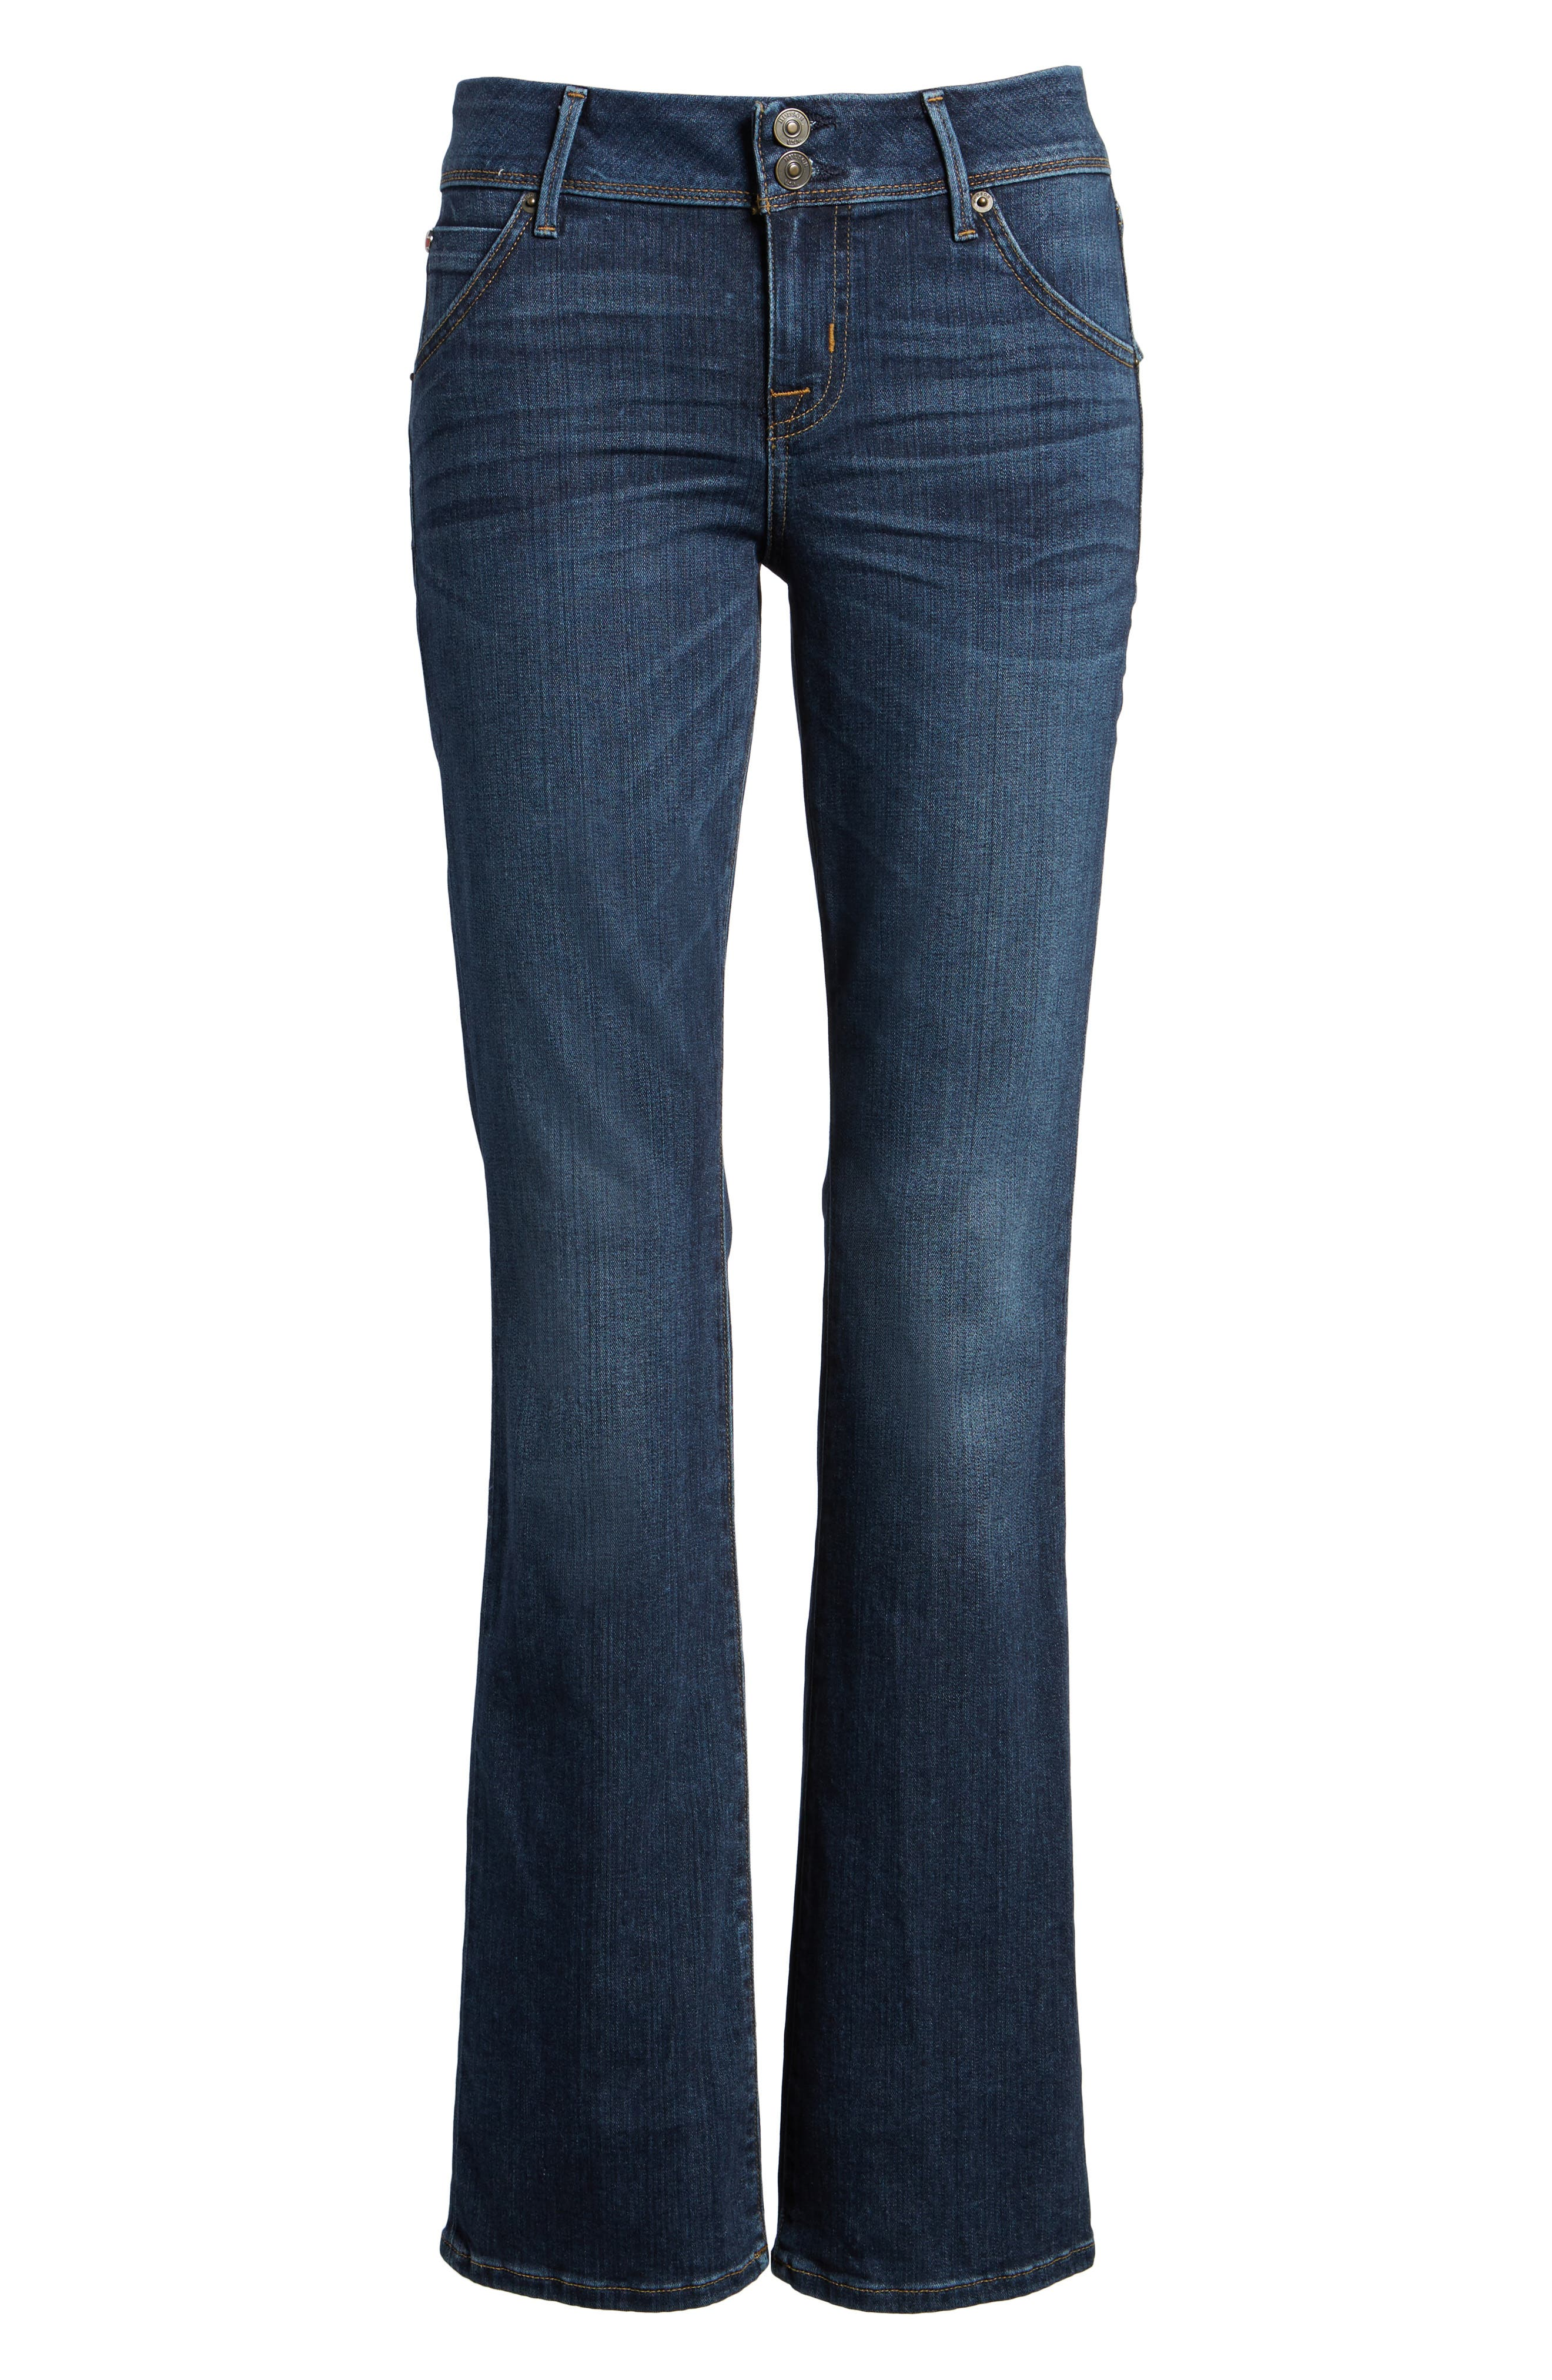 Beth Baby Bootcut Jeans,                             Alternate thumbnail 6, color,                             422